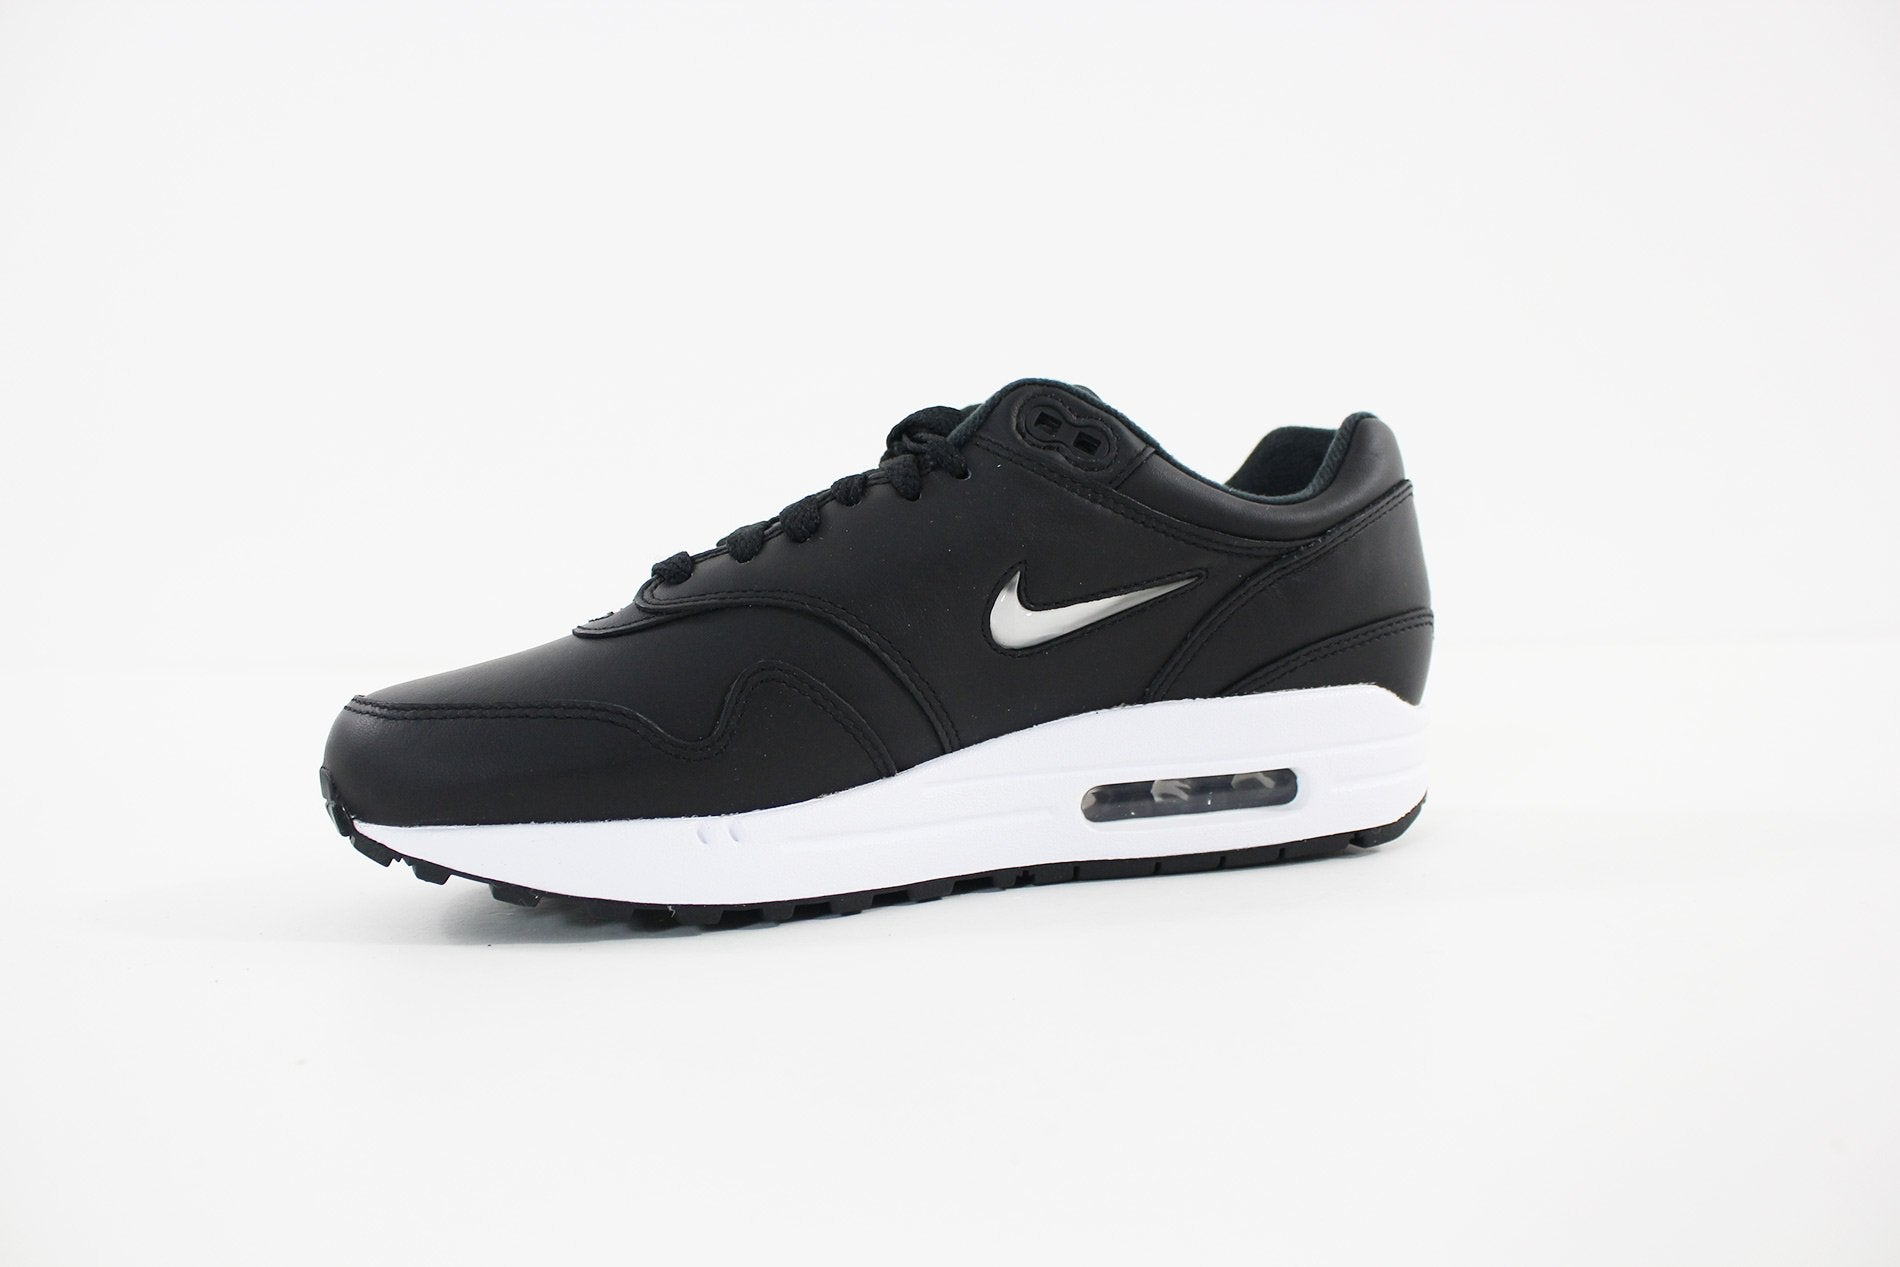 buy popular 8b815 3093f ... usa nike mens air max 1 premium sc shoe black metallic silver white  918354 001 4cae6